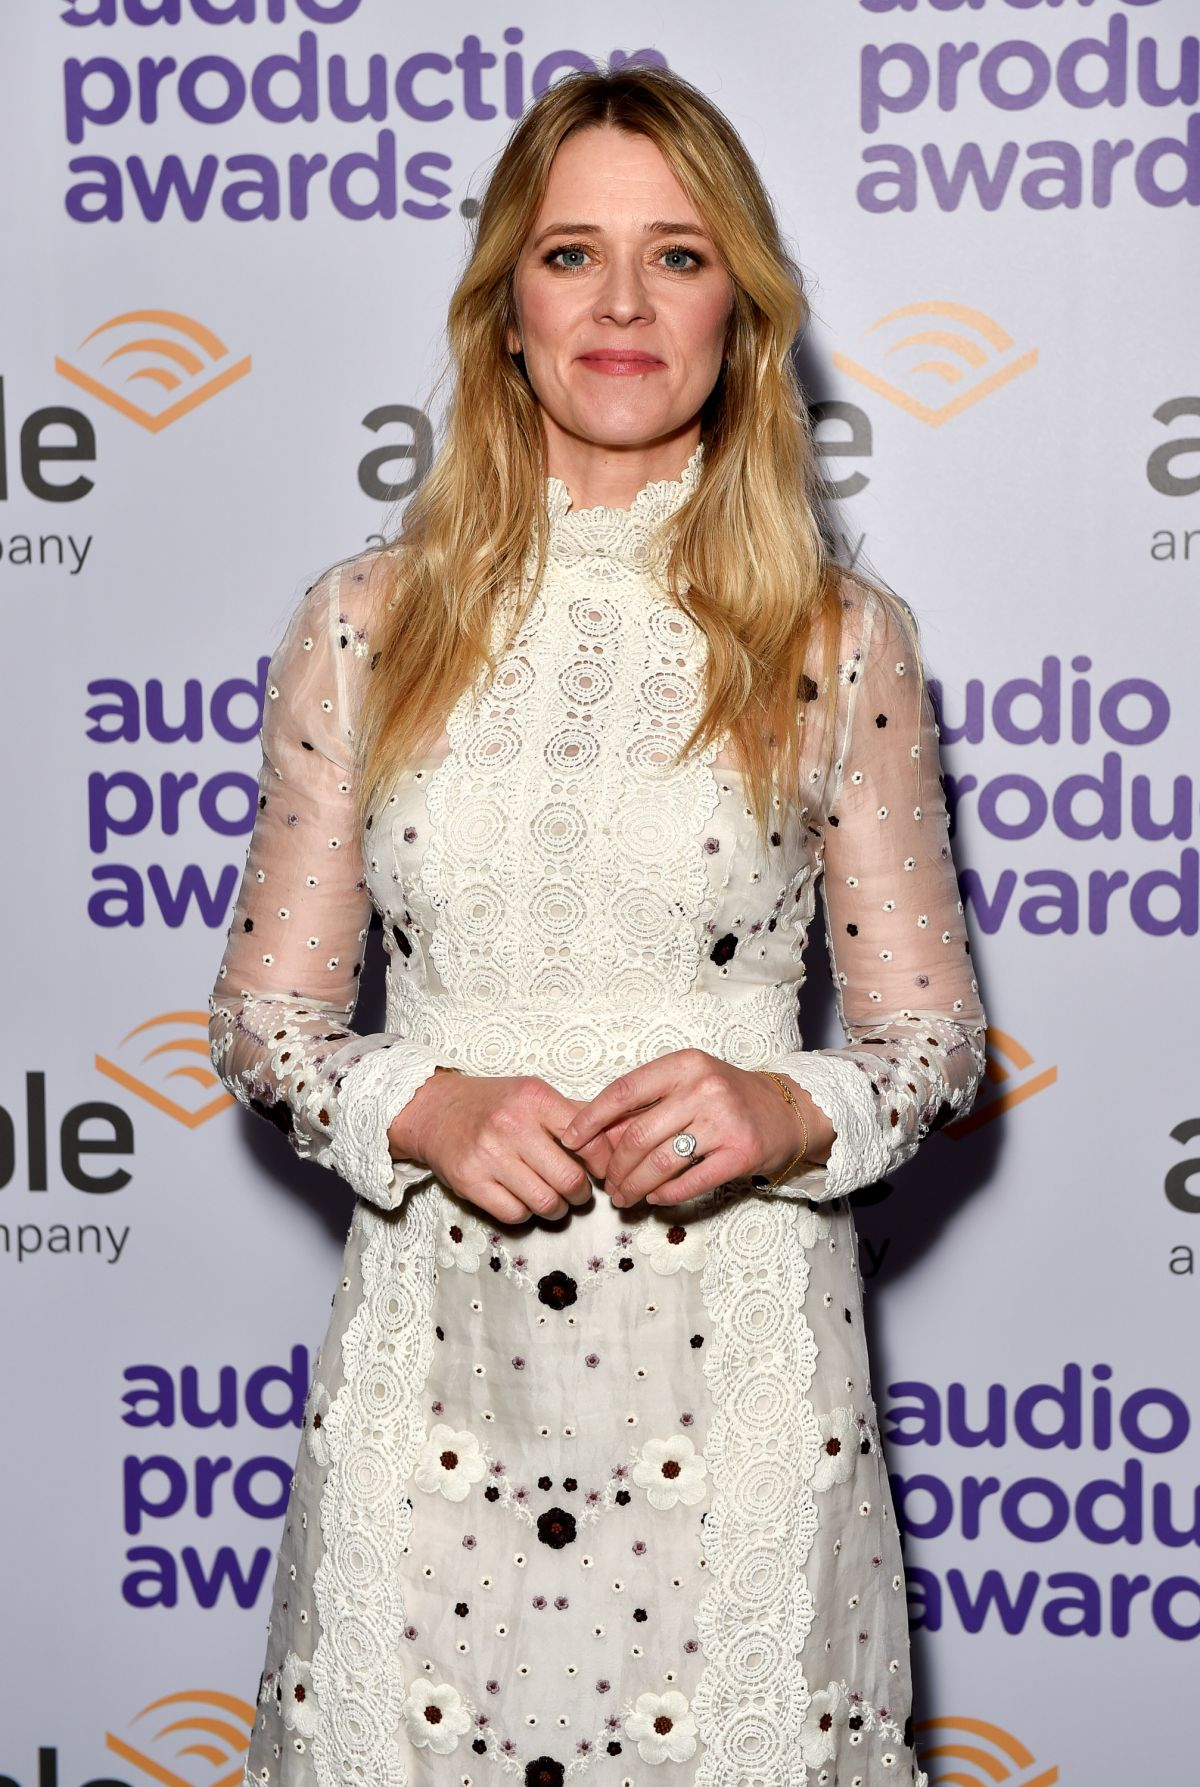 EDITH BOWMAN at Audio Production Awards 11/23/2016